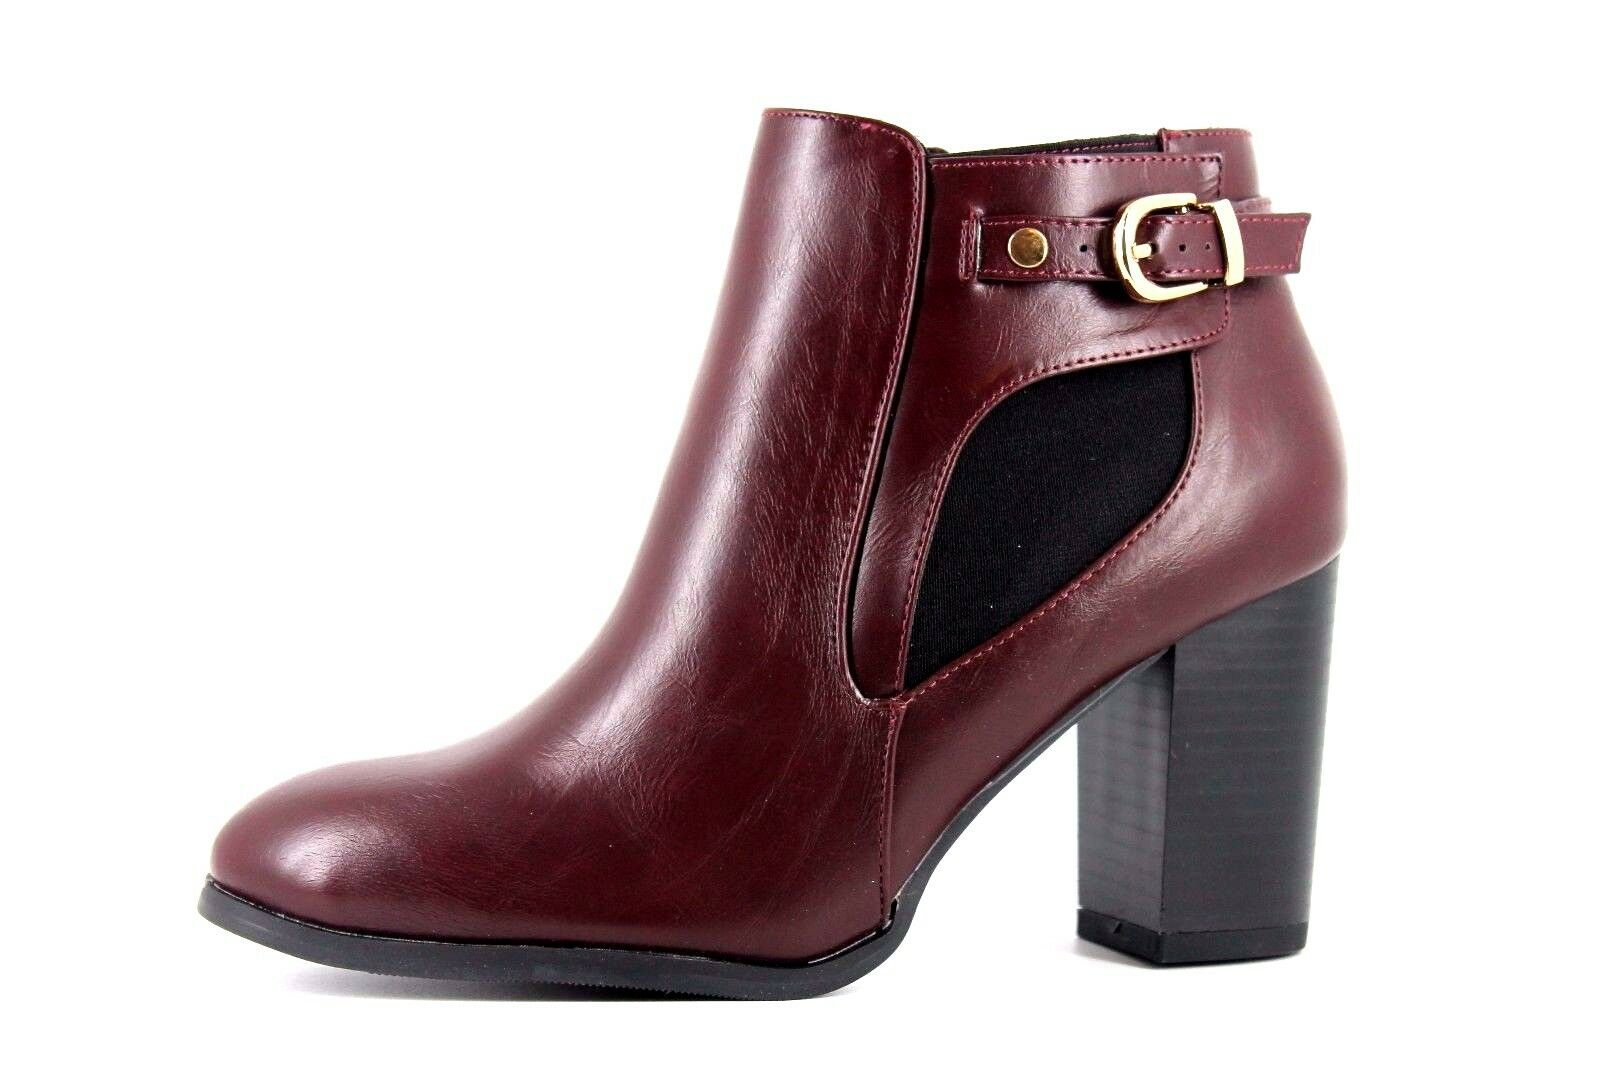 Wallis Aaliyah Womens UK 6 EU 39 Red Wine Faux Leather Zip Up Heeled Ankle Boots